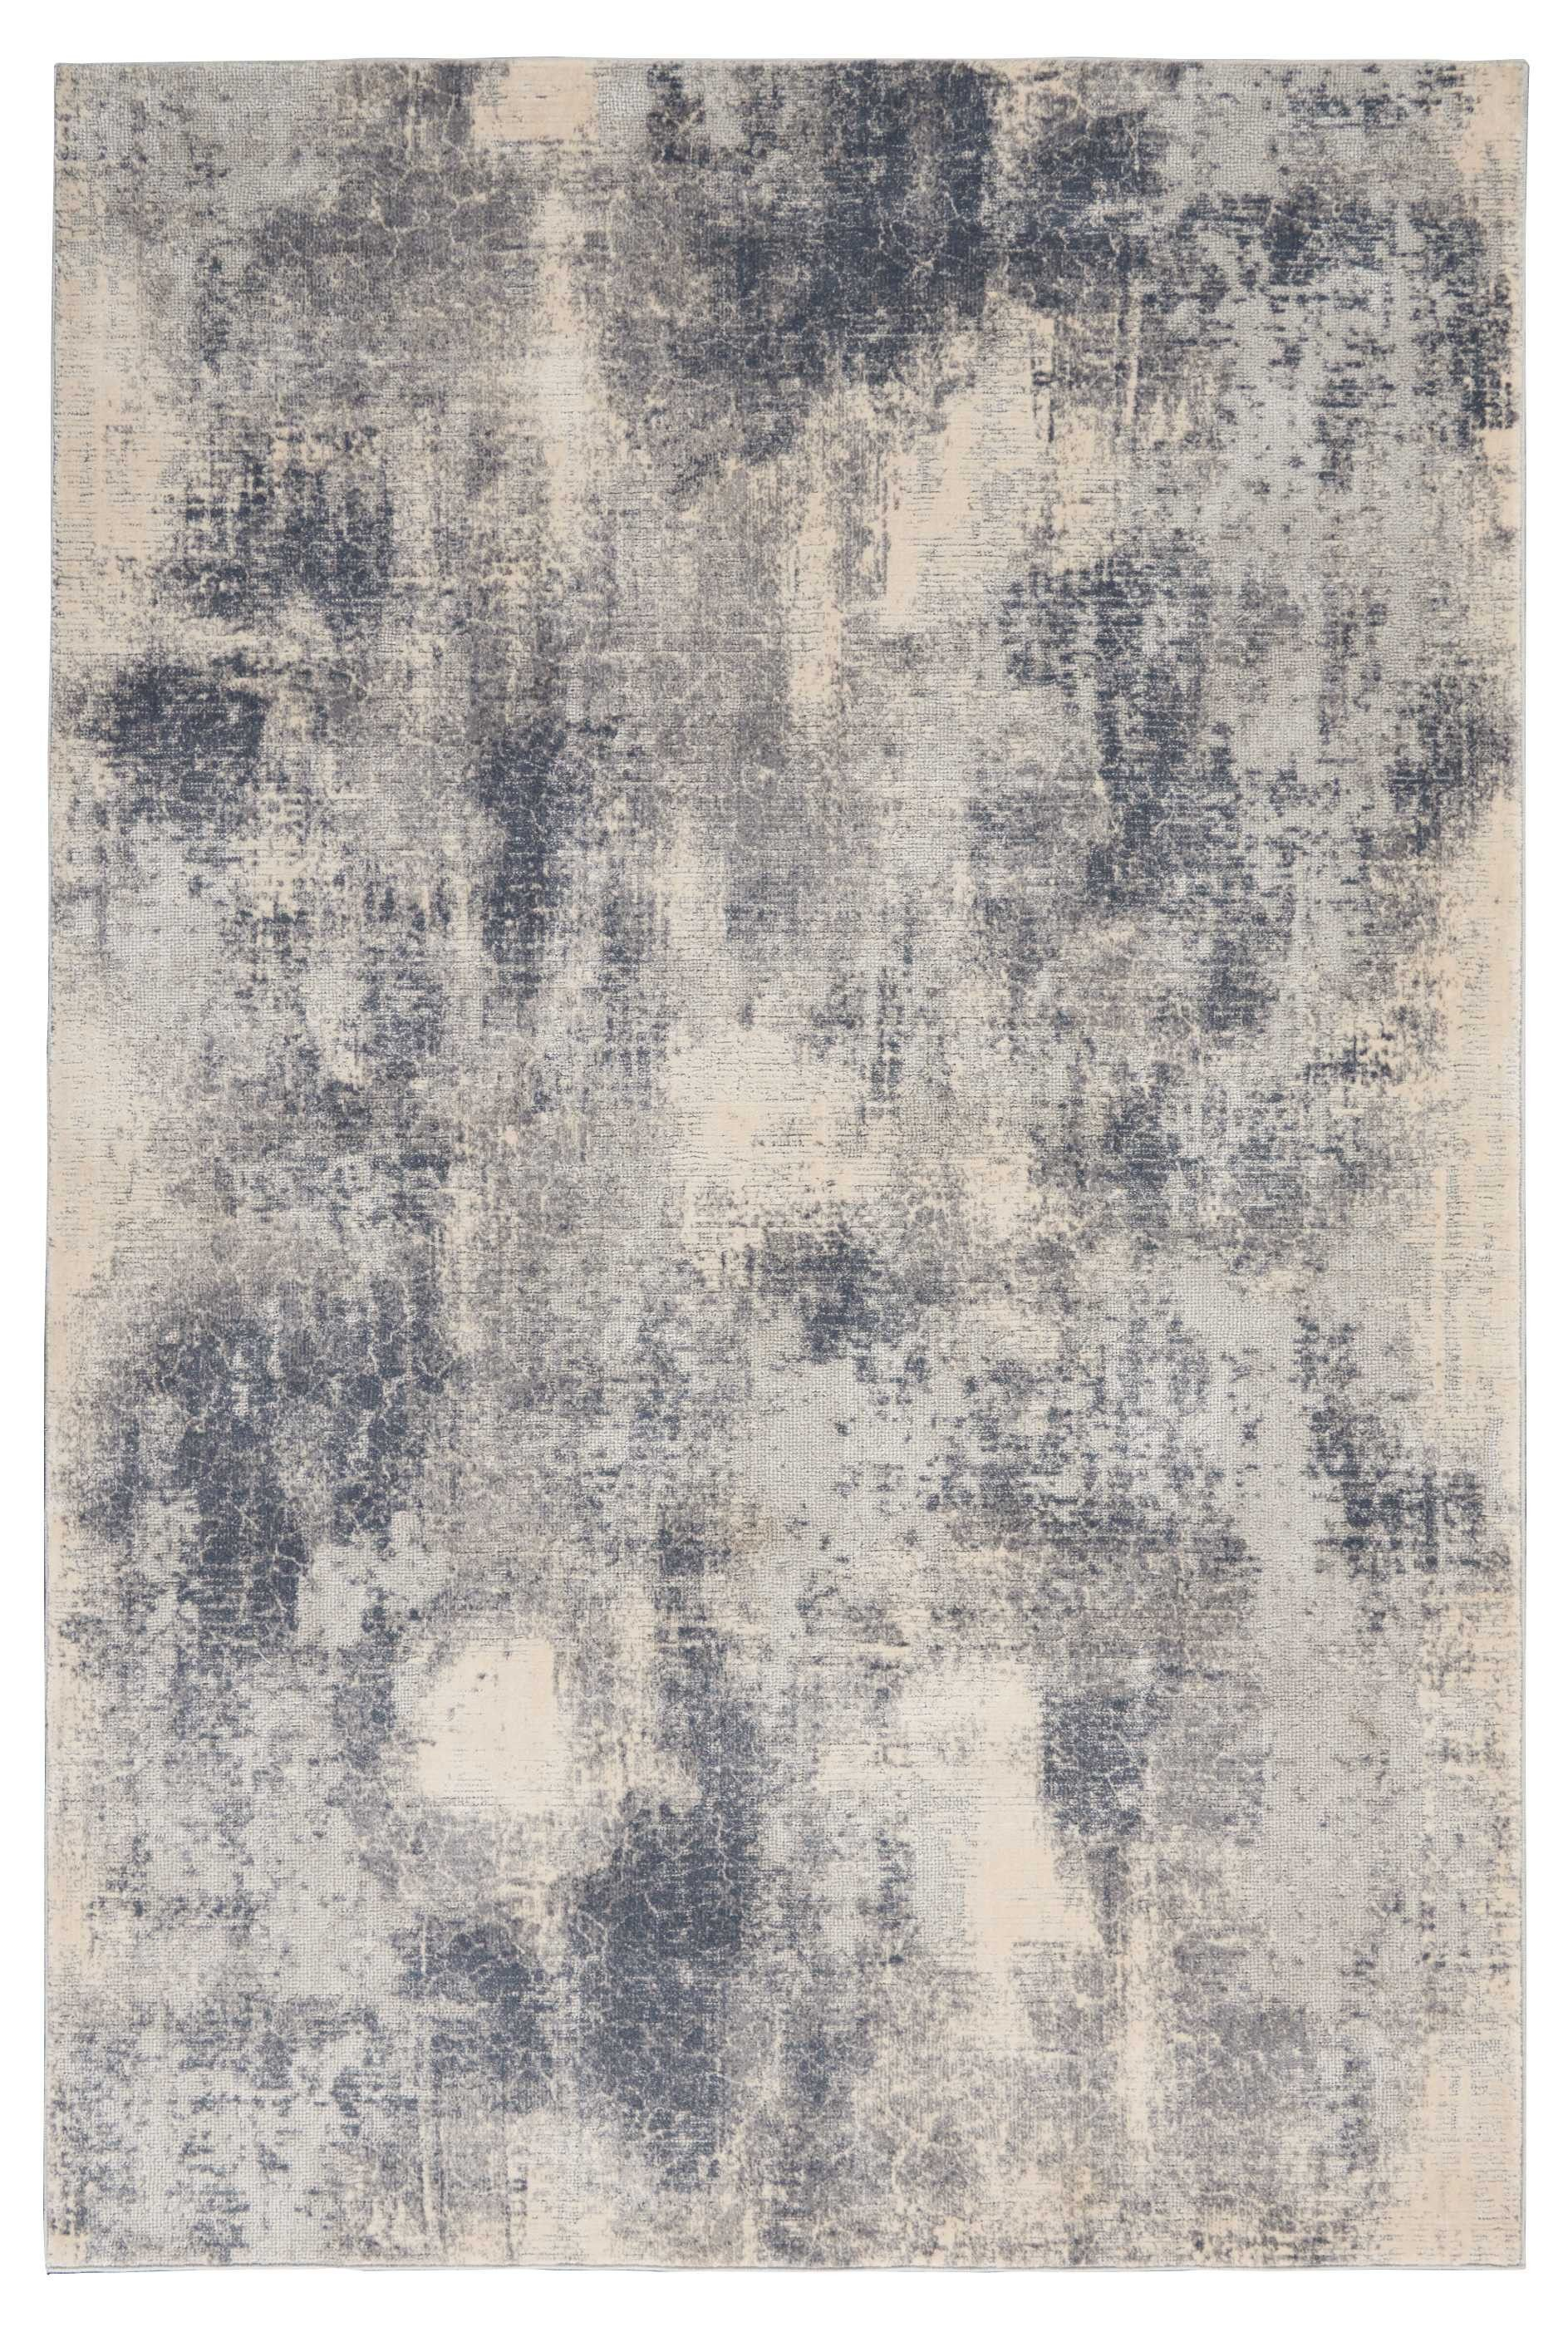 Rustic Textures Rus02 Blue Ivory Rustic Textures Area Rugs Products Rustic Area Rugs Blue Grey Rug Rustic Background